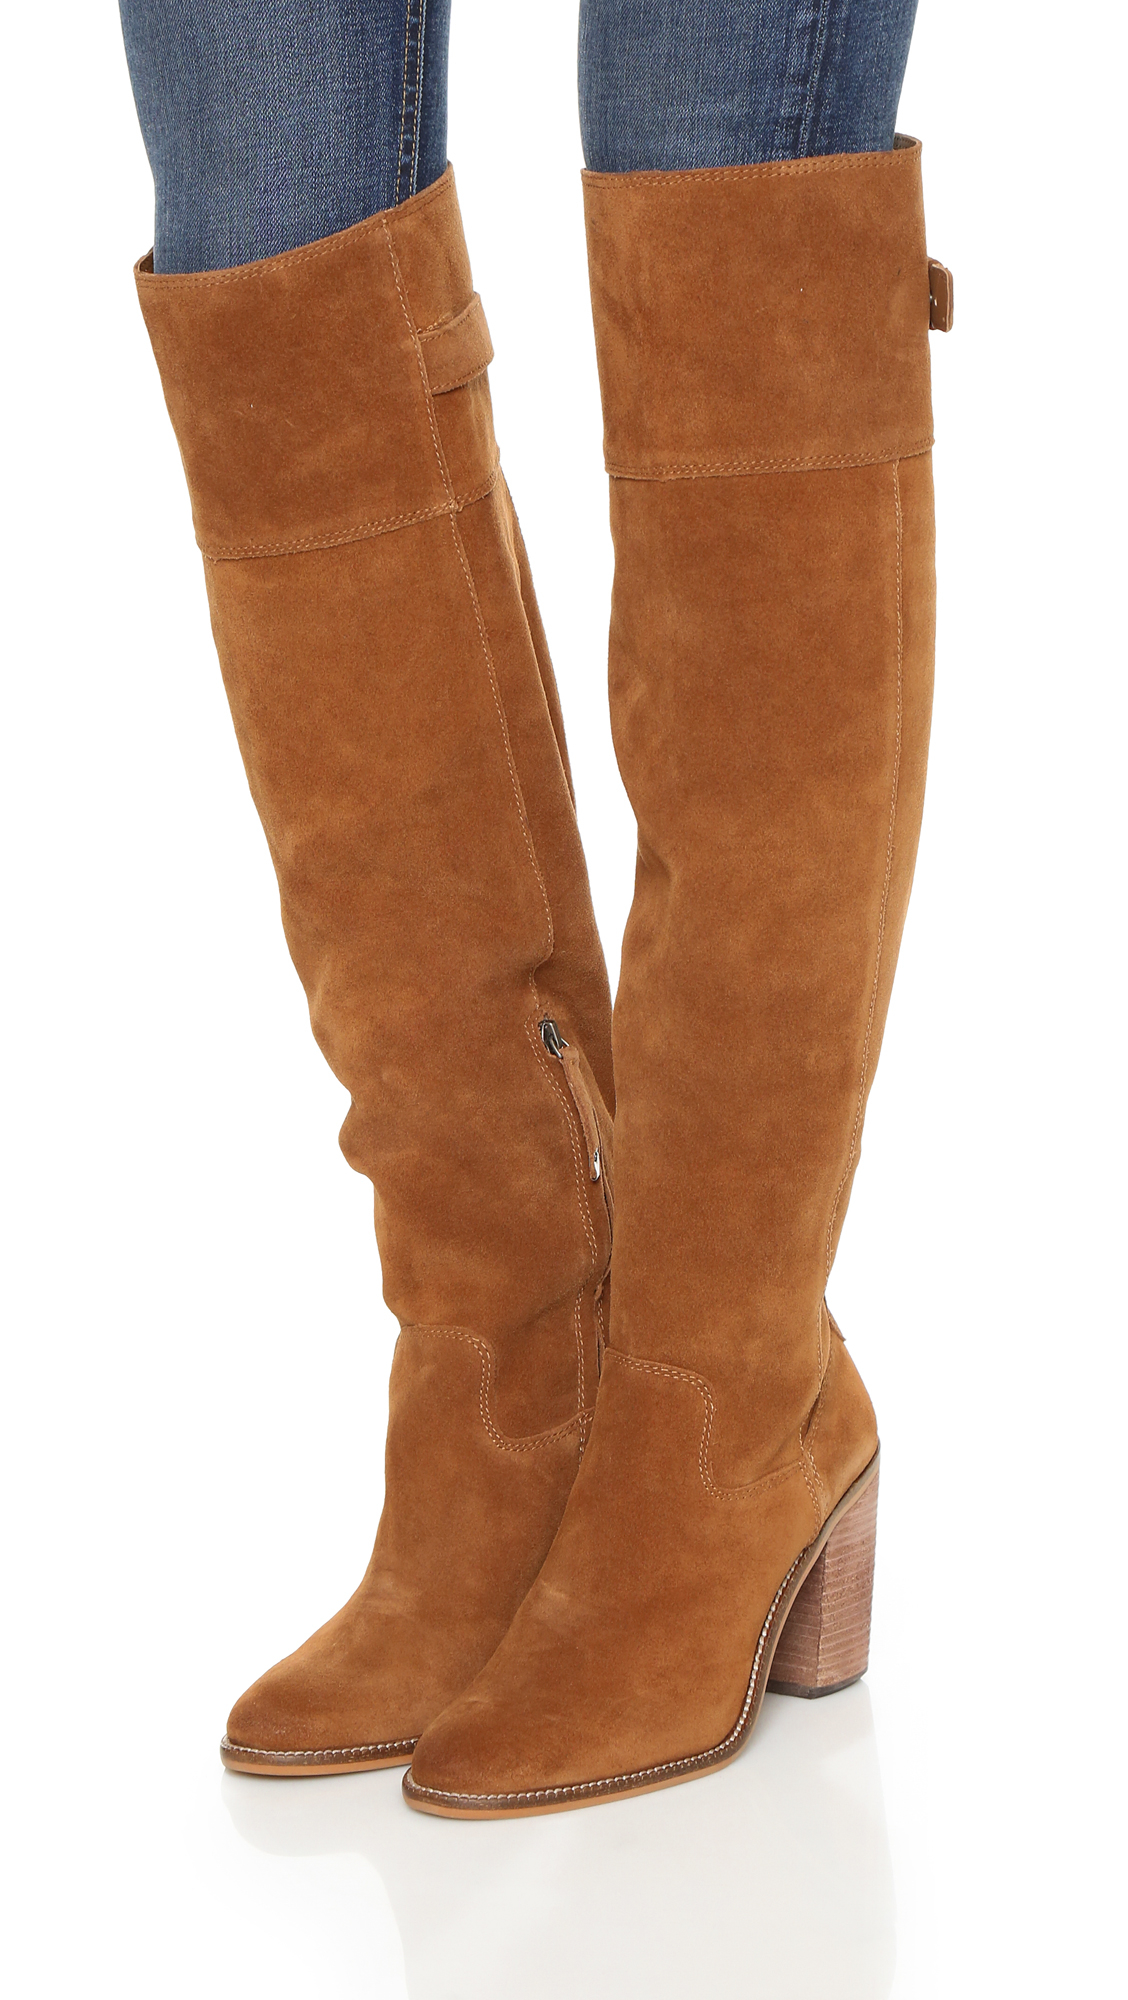 f1e47b88a27 Lyst - Dolce Vita Okana Boots - Taupe in Brown